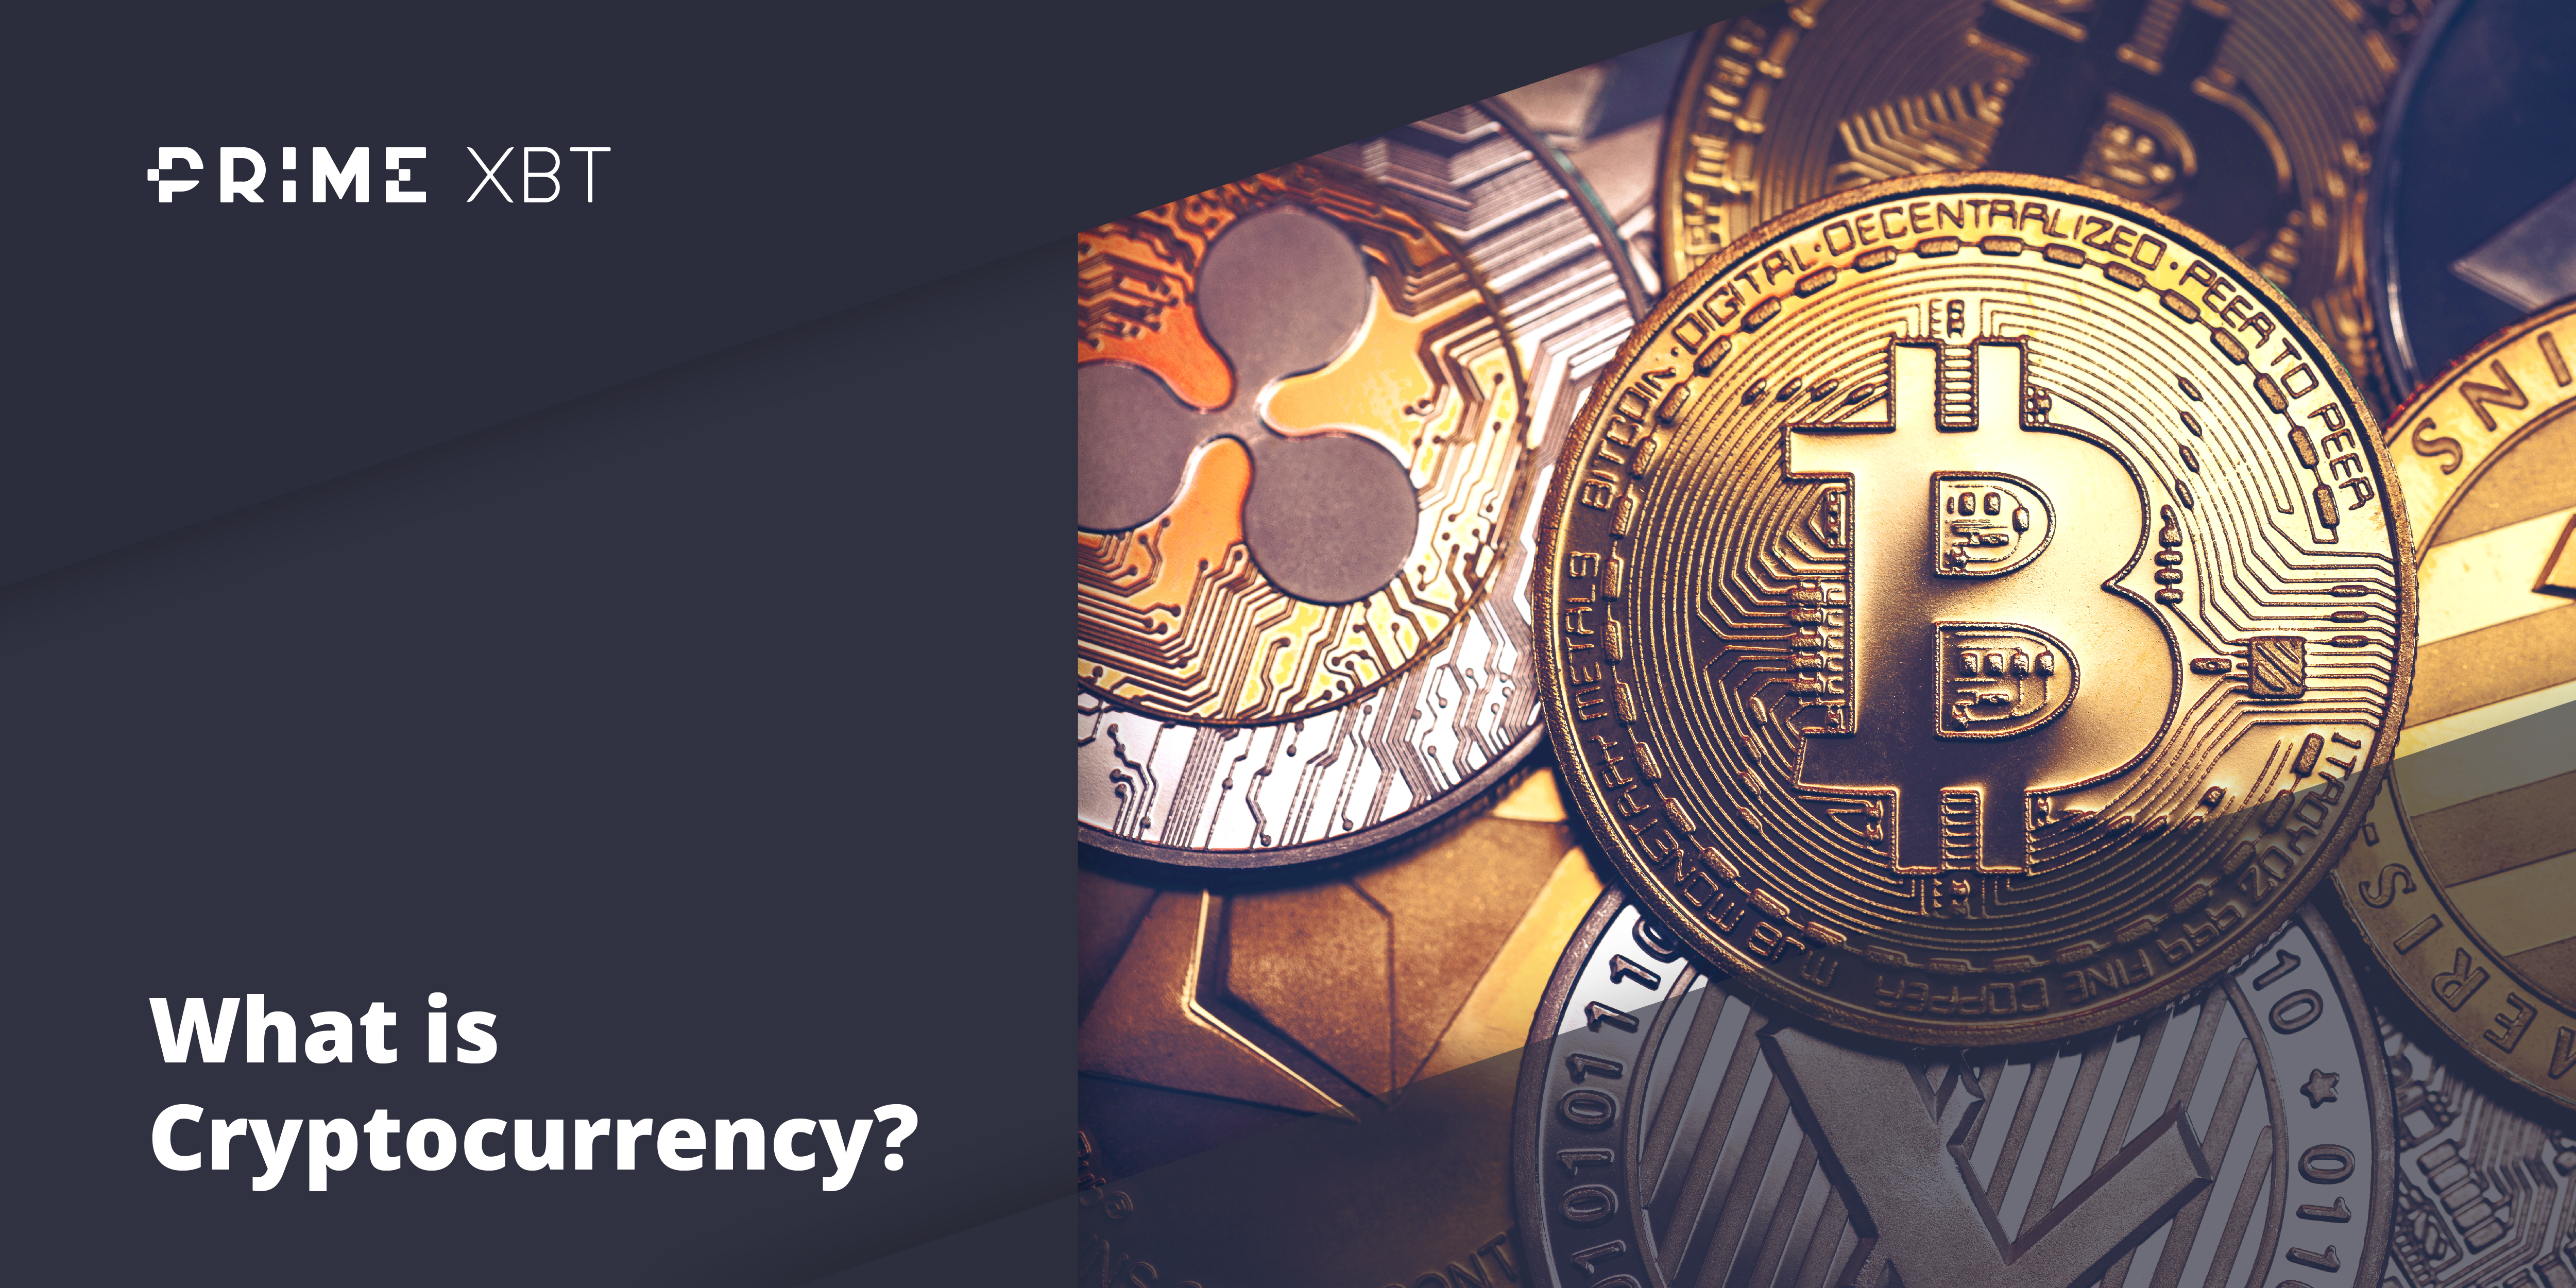 blog primexbt crypto - What is Cryptocurrency? Introduction To The Emerging Financial Asset Class